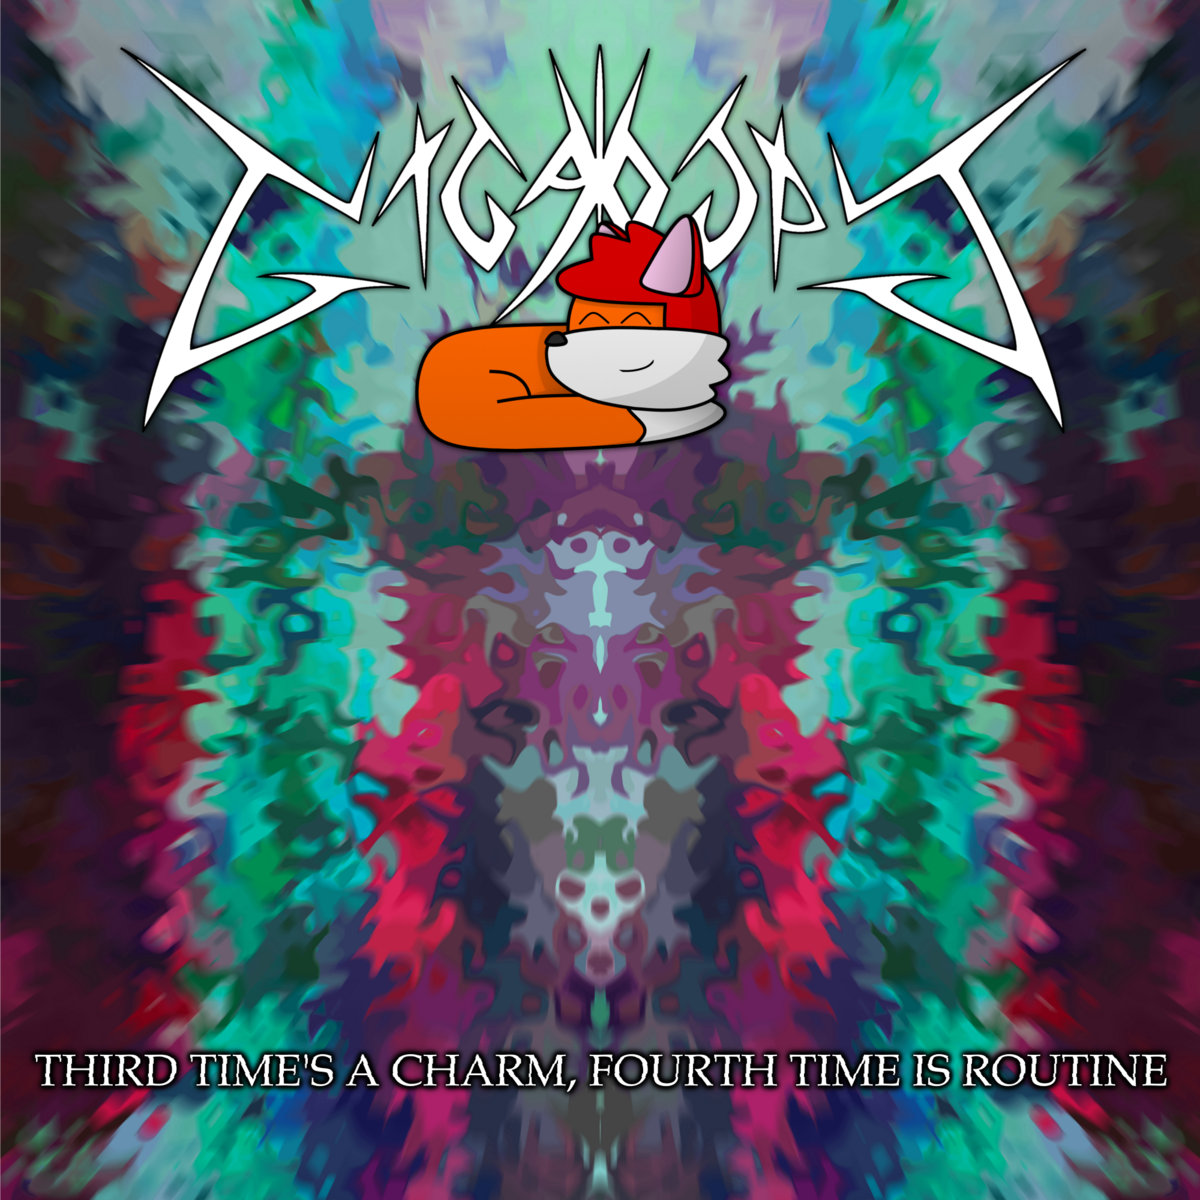 Gigakoops – Third Time's a Charm, Fourth Time is Routine